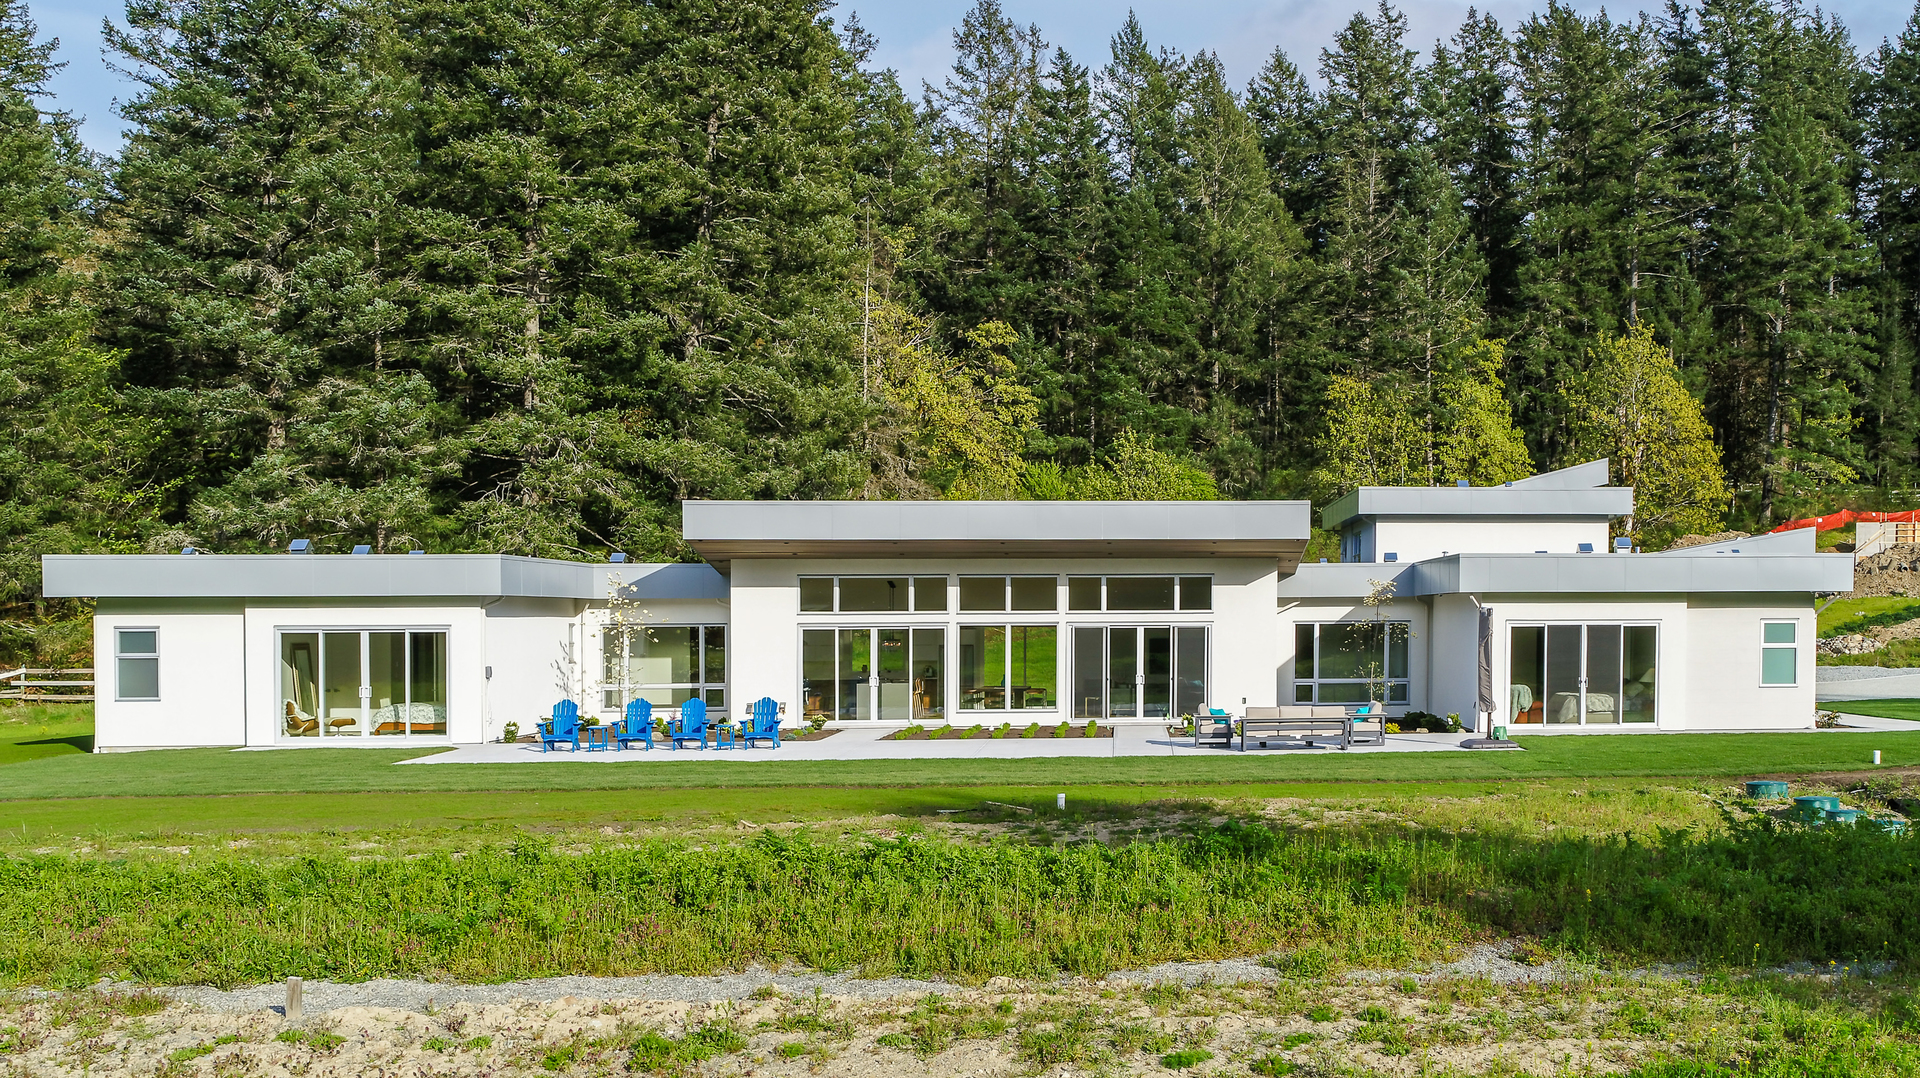 Loads of Space at 5101 Jagtar's Way, Victoria, Vancouver Island,